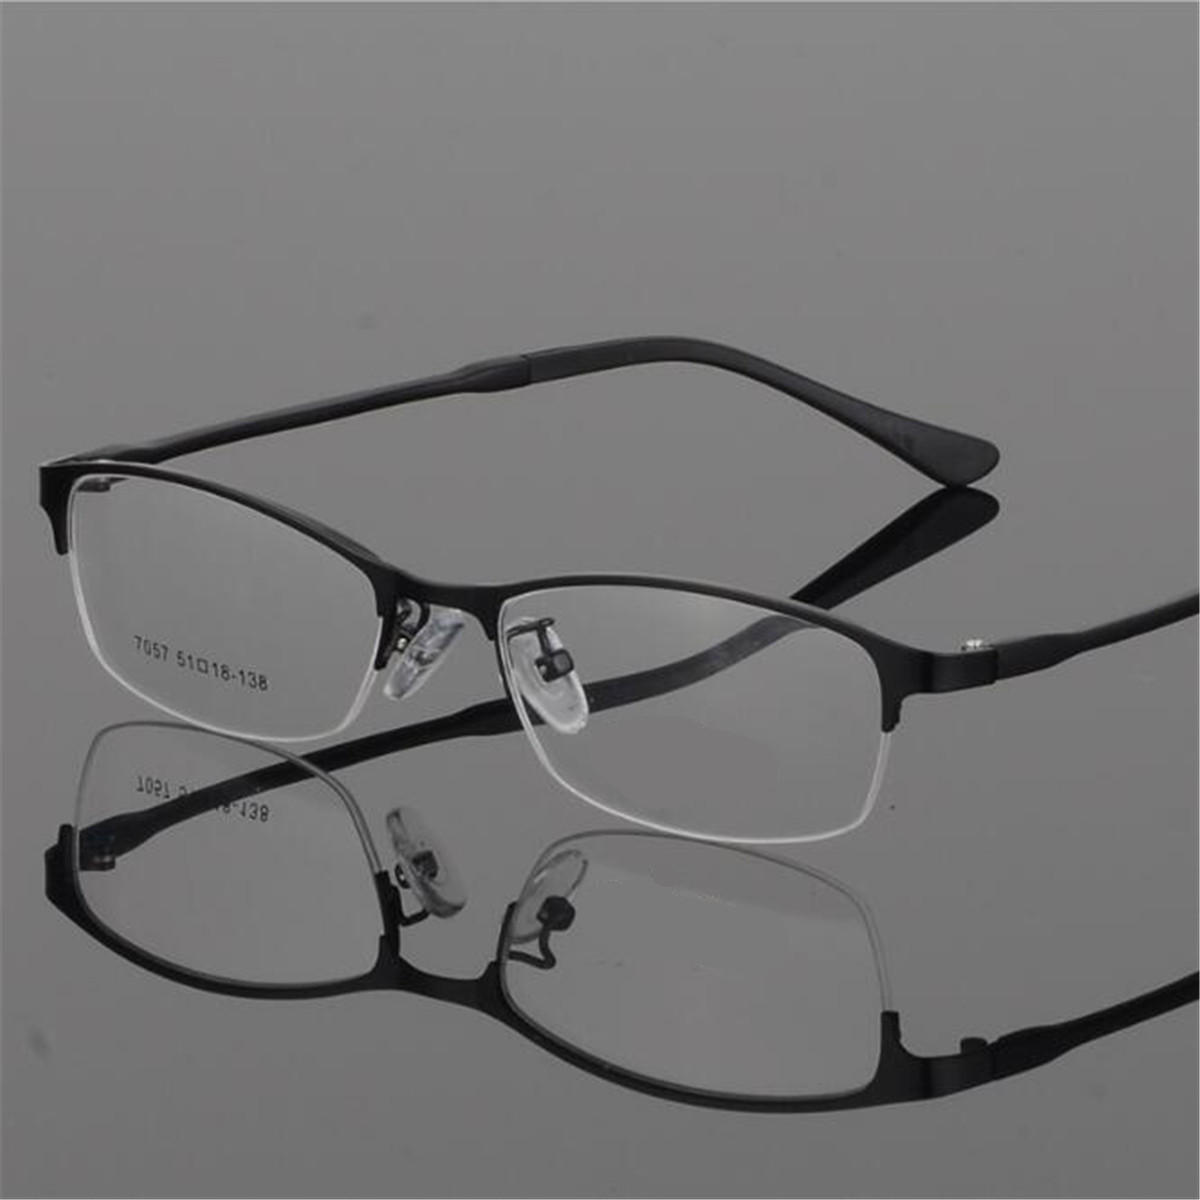 68123d013a Eye Glasses Half Rimless Glasses Frame Eyeglasses Clear Lens Metal TR90  Optical Glasses RX Spectacles COD